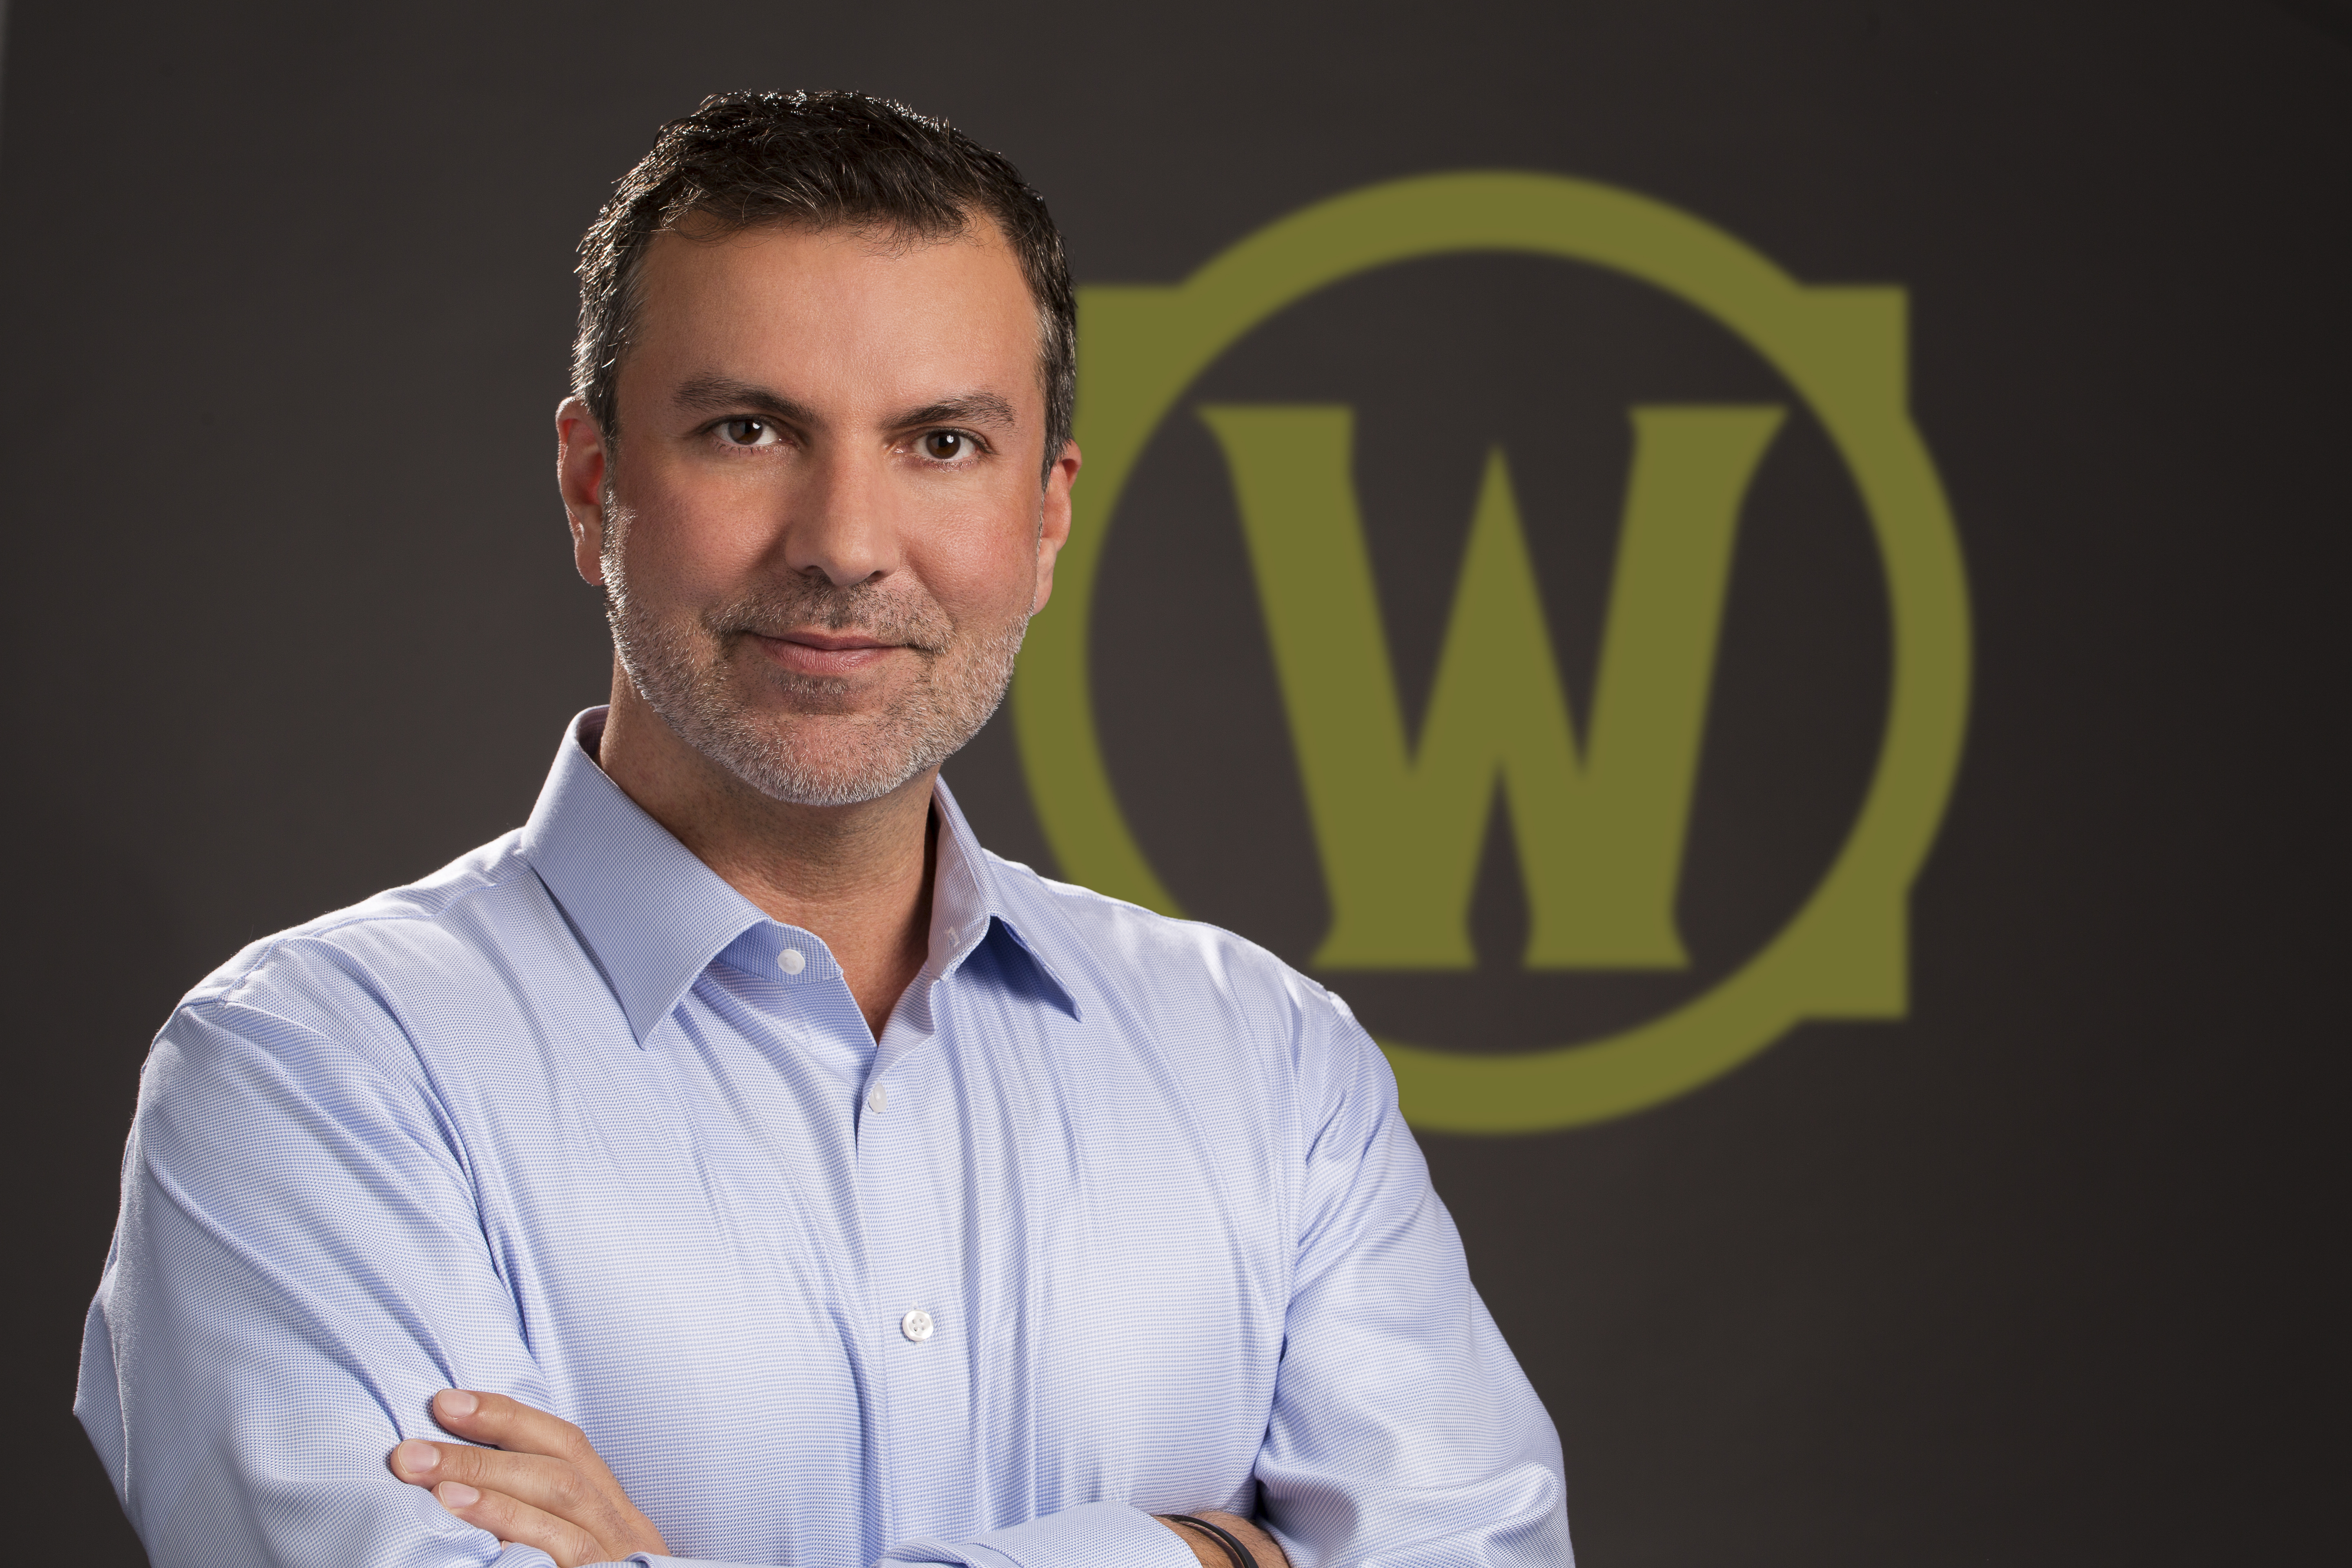 A press photo of former World of Warcraft creative director Alex Afrasiabi in front of the game's logo.